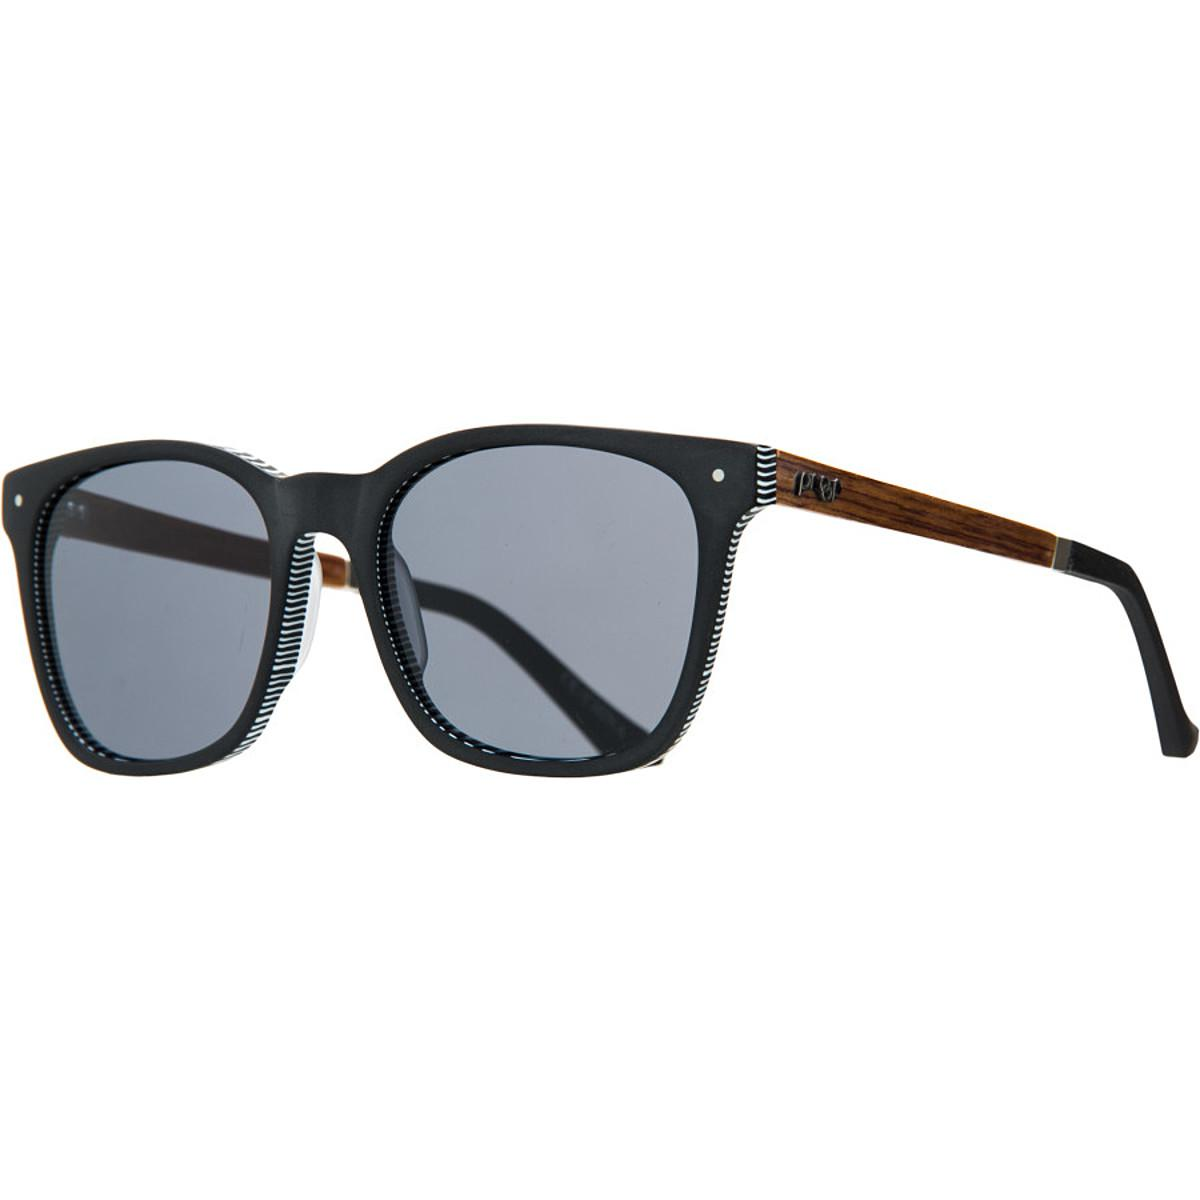 ed606537c9dbe Lyst - Proof Scout Eco Sunglasses in Black for Men